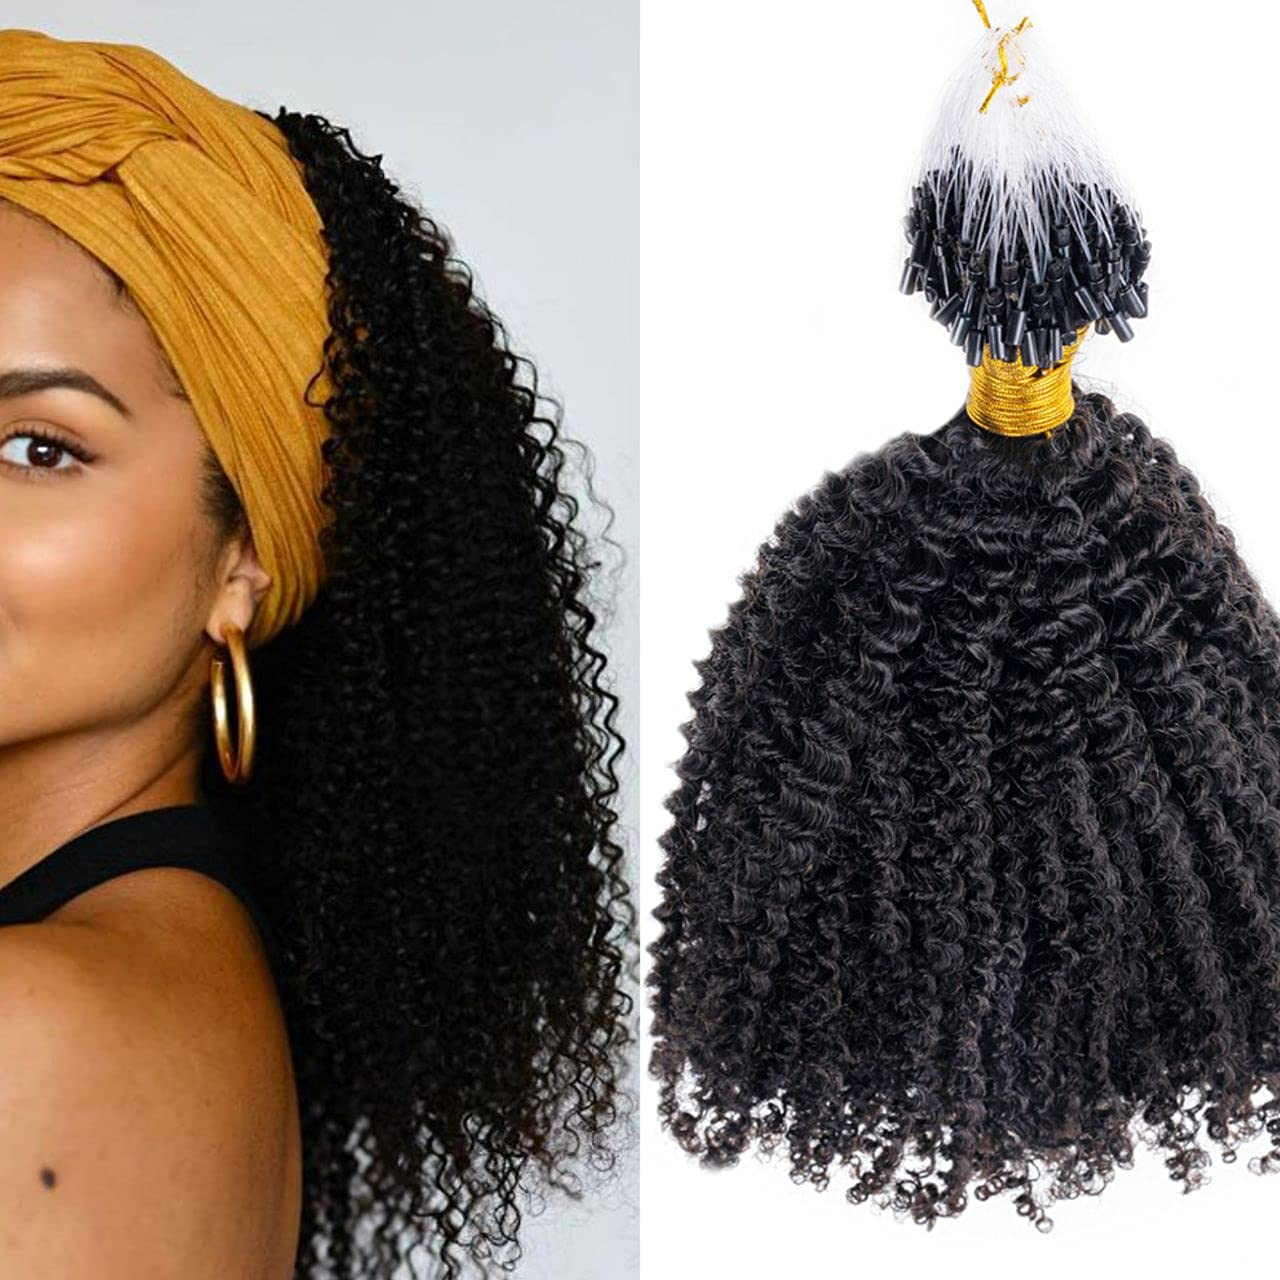 Niawigs Afro Columbus Mall Kinky Curly Beauty products Microlink Extensions Hair Fo Human